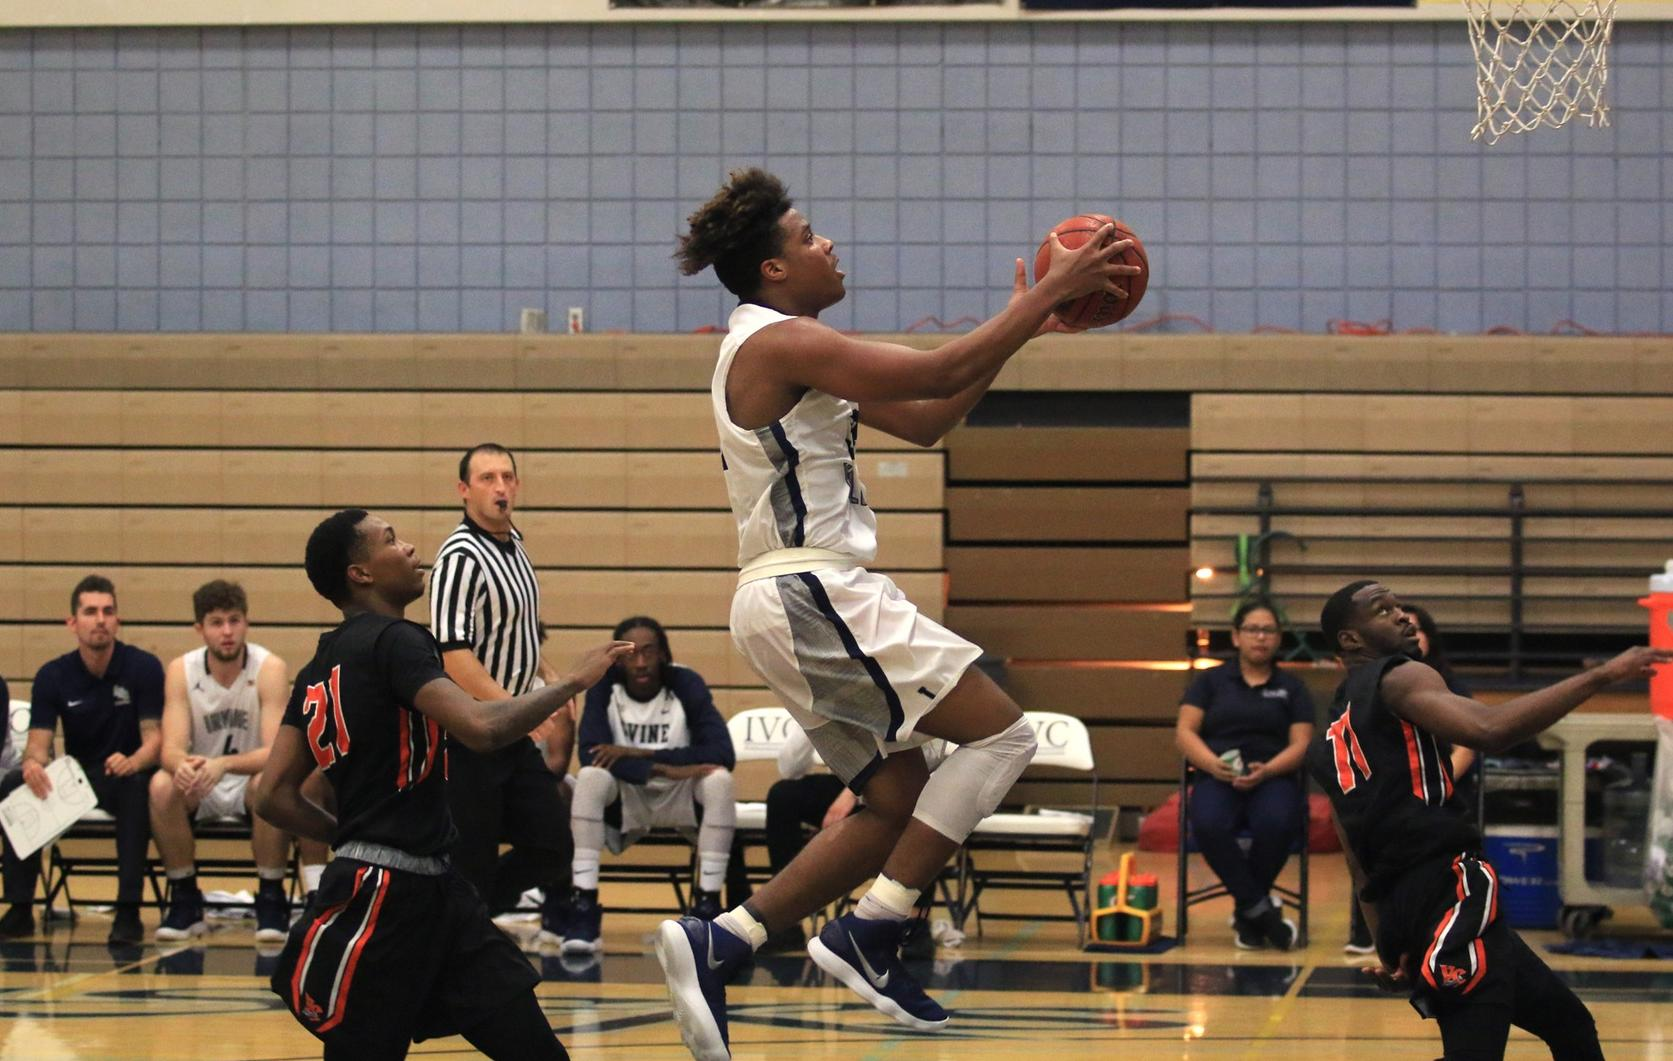 Men's basketball team battles, but falls to Ventura in classic